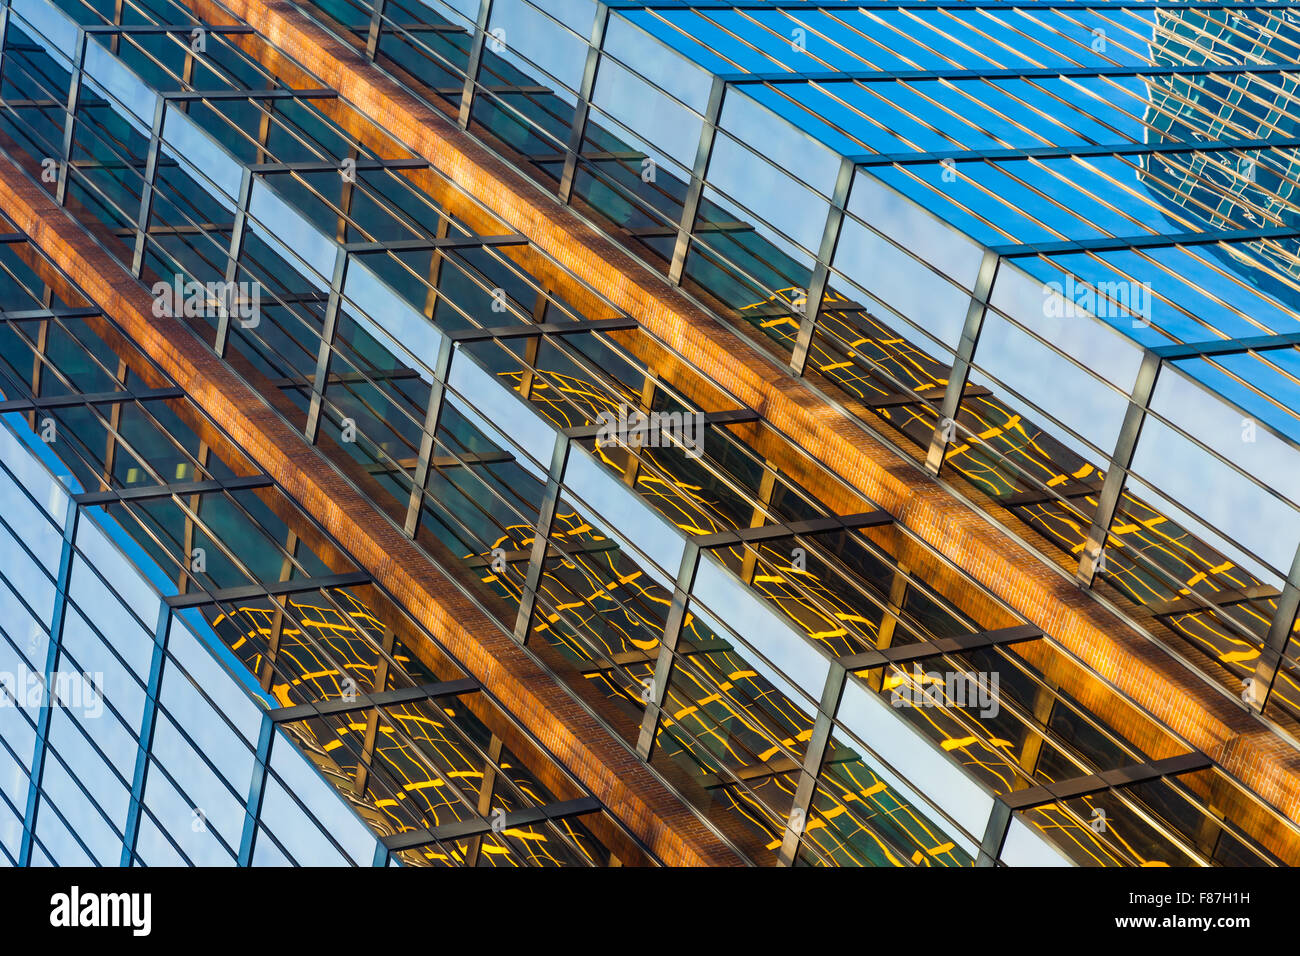 Abstract view of a glass tower and reflections in Vancouver Stock Photo